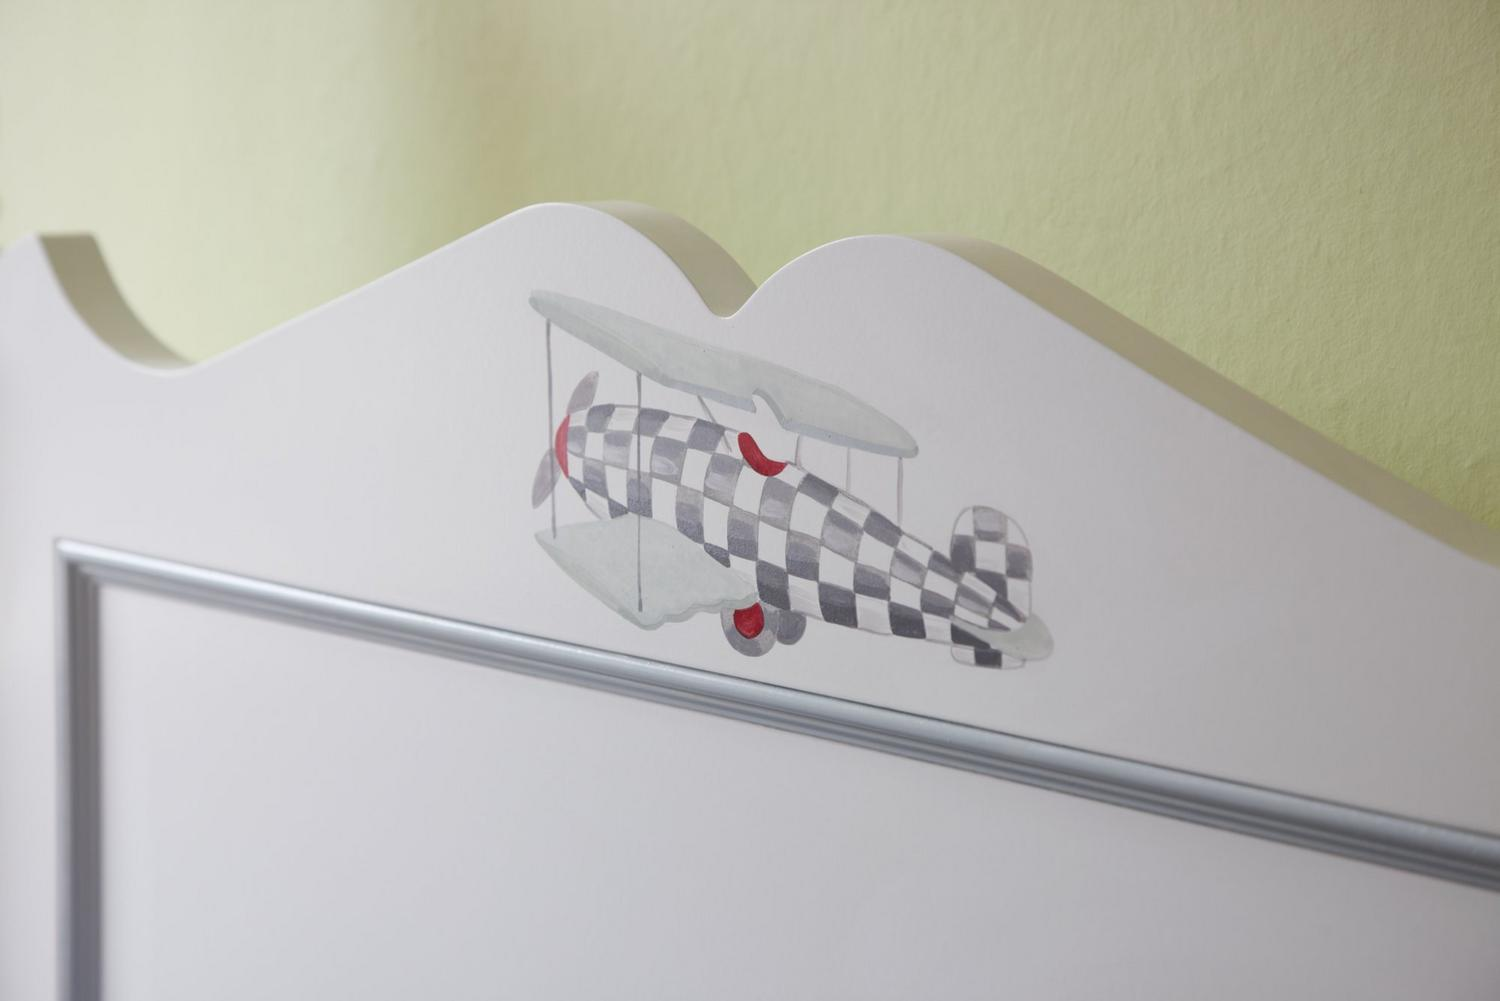 Vintage airplane painting for Vintage Transport themed kids room | Dragons of Walton Street